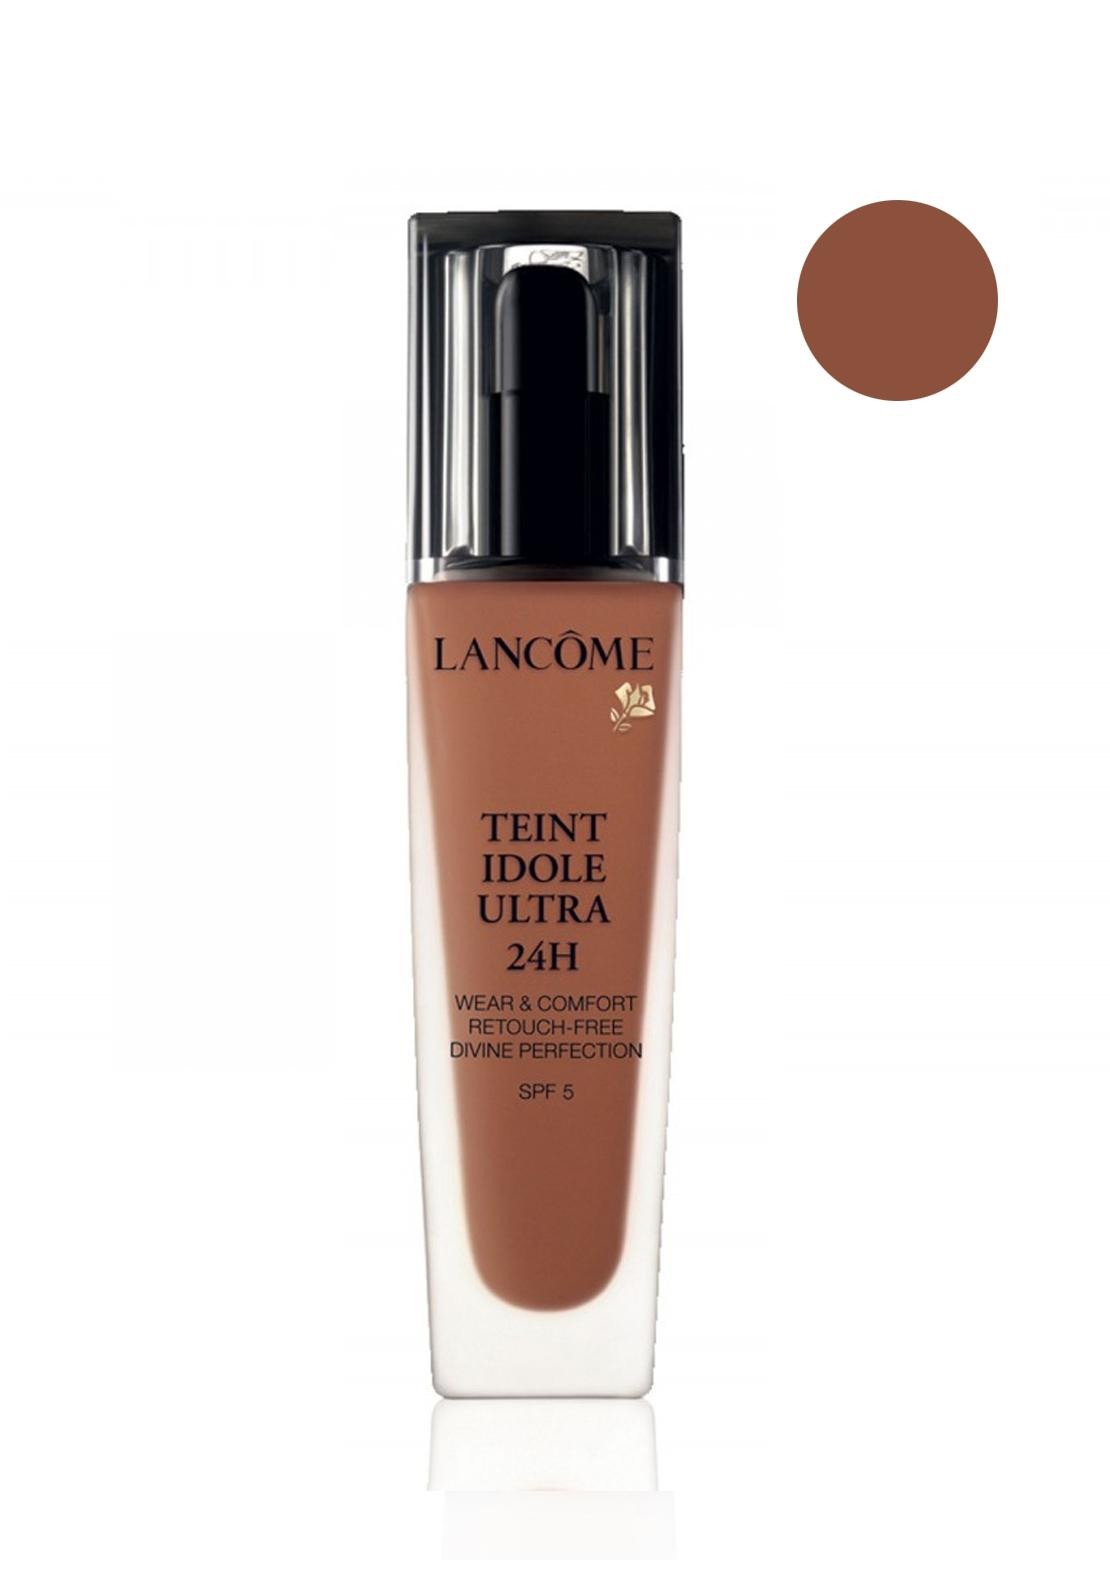 Lancome Teint Idole Ultra Foundation, Lancome Sienne 30ml